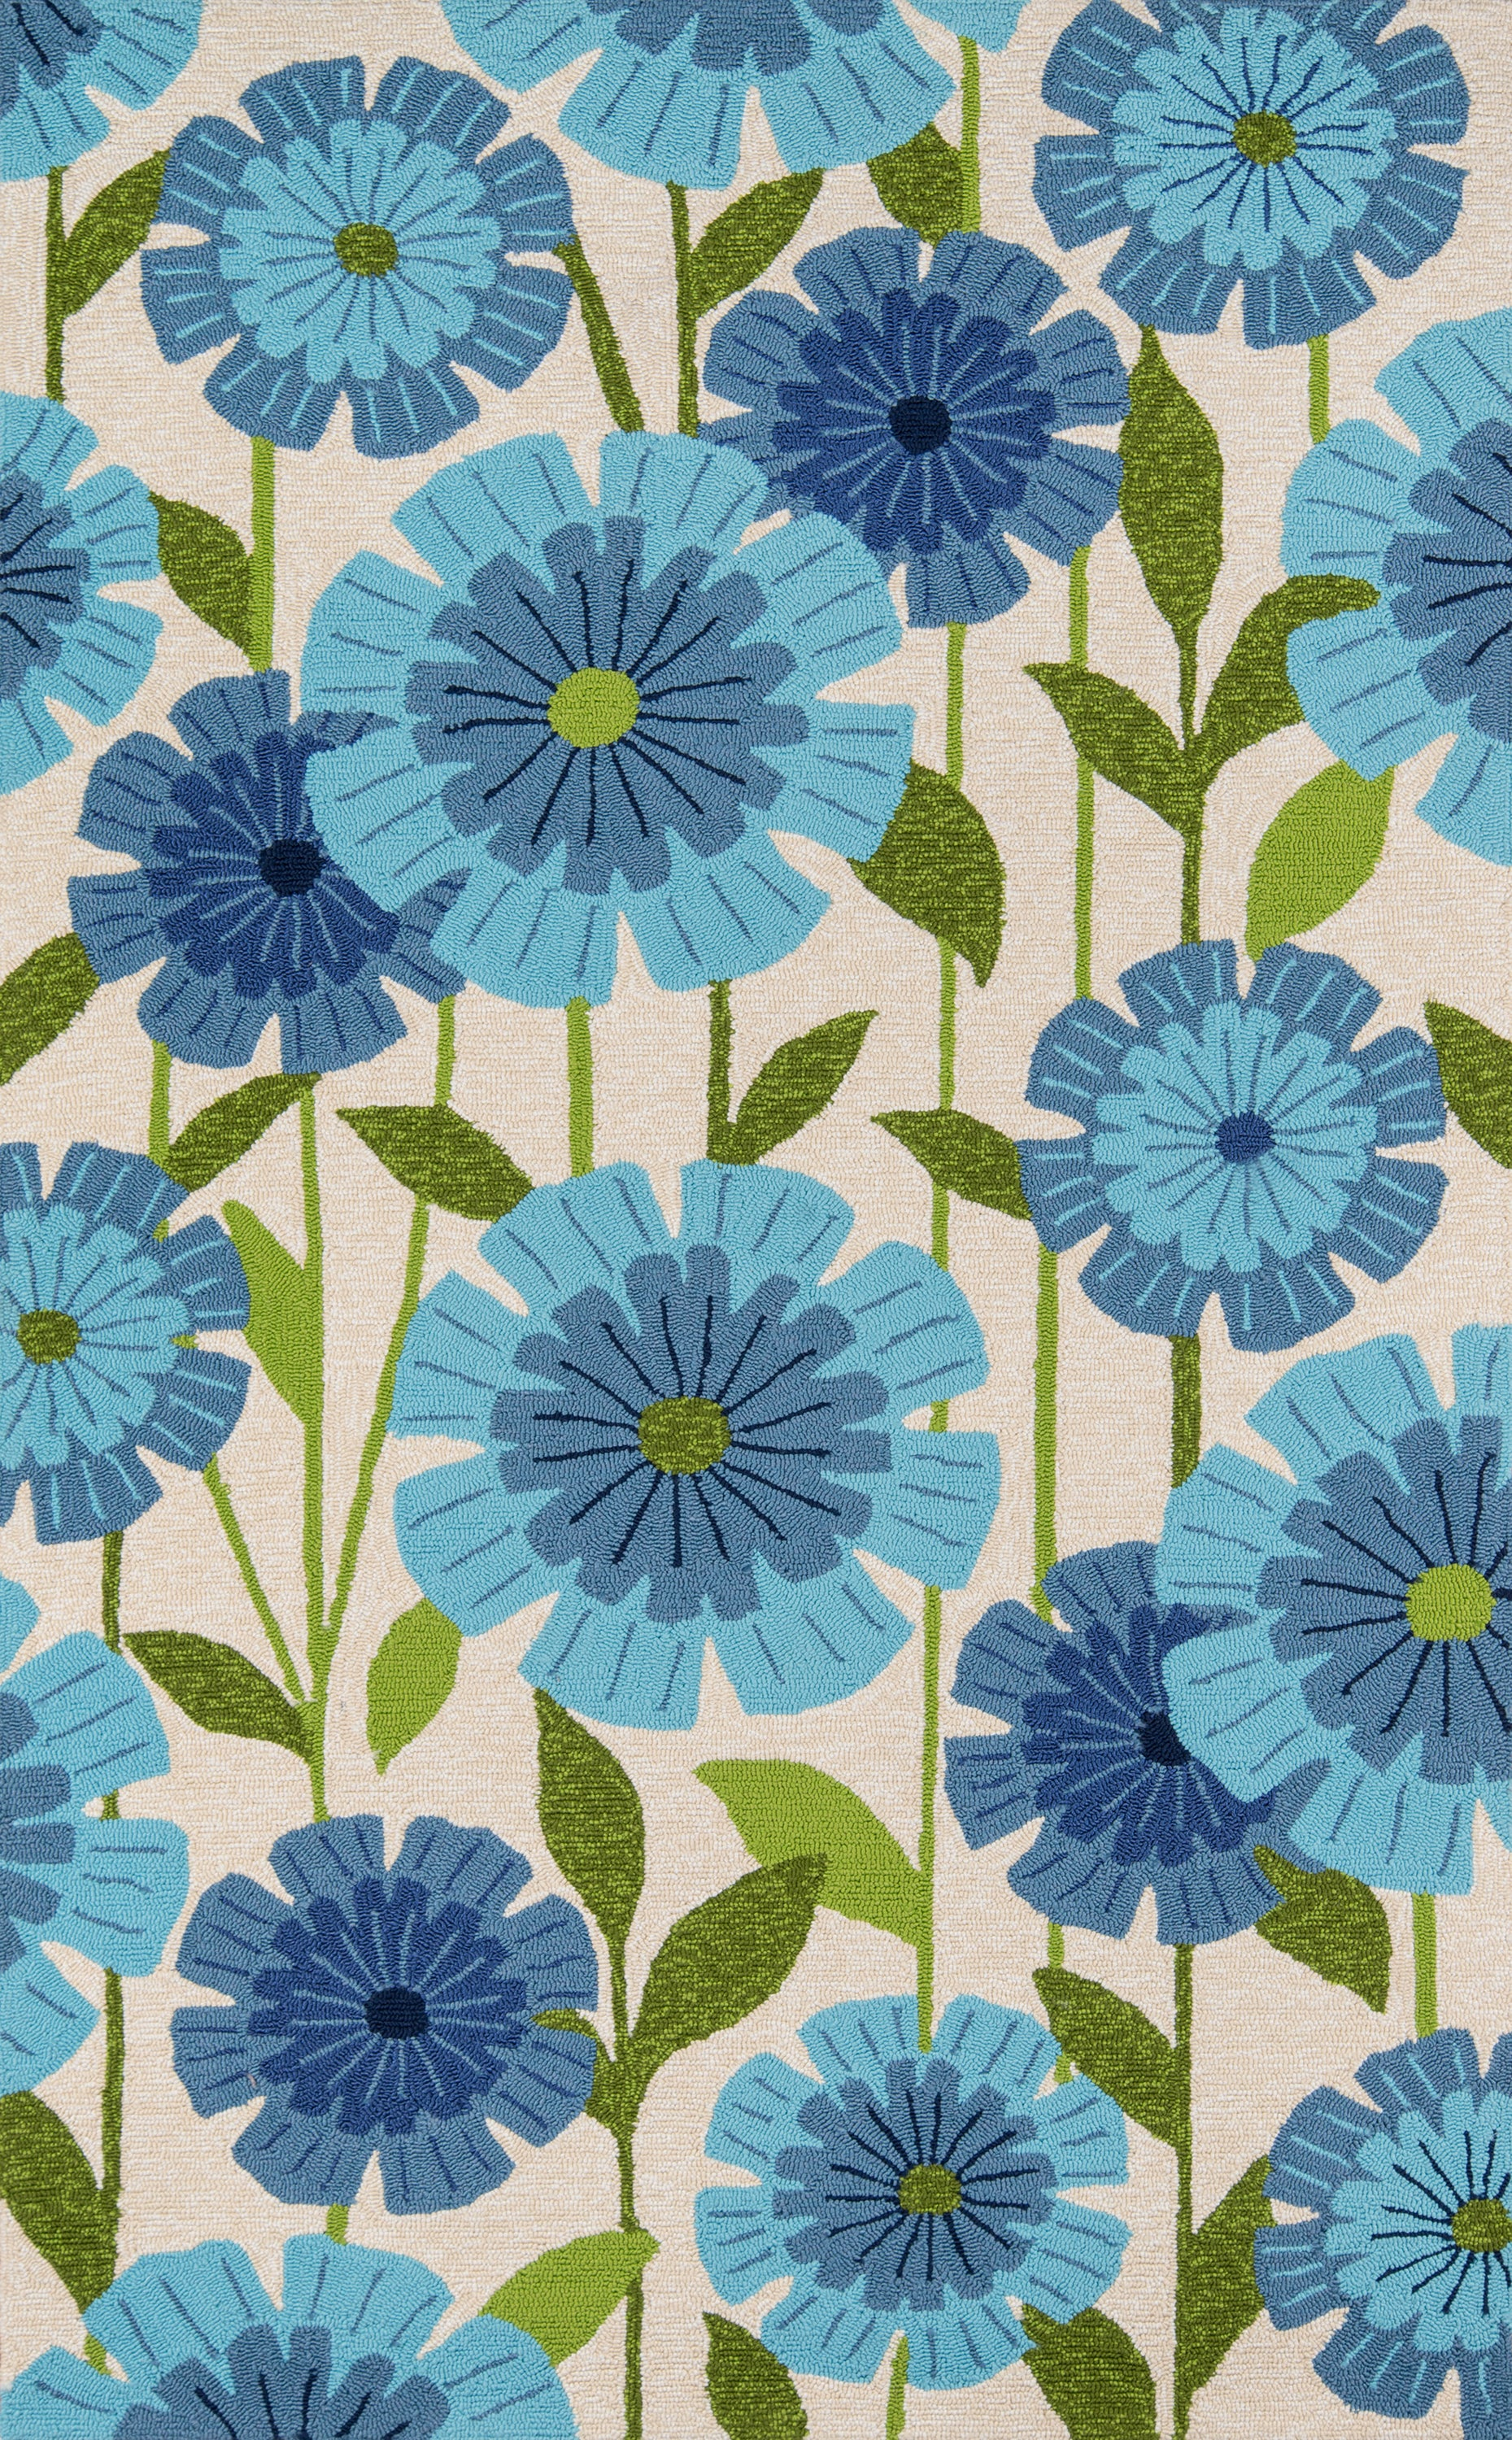 Rectangle, Round Blue Floral Hand Hooked Synthetics Casual recommended for Bedroom, Bathroom, Outdoor, Dining Room, Office, Hallway, Living Room